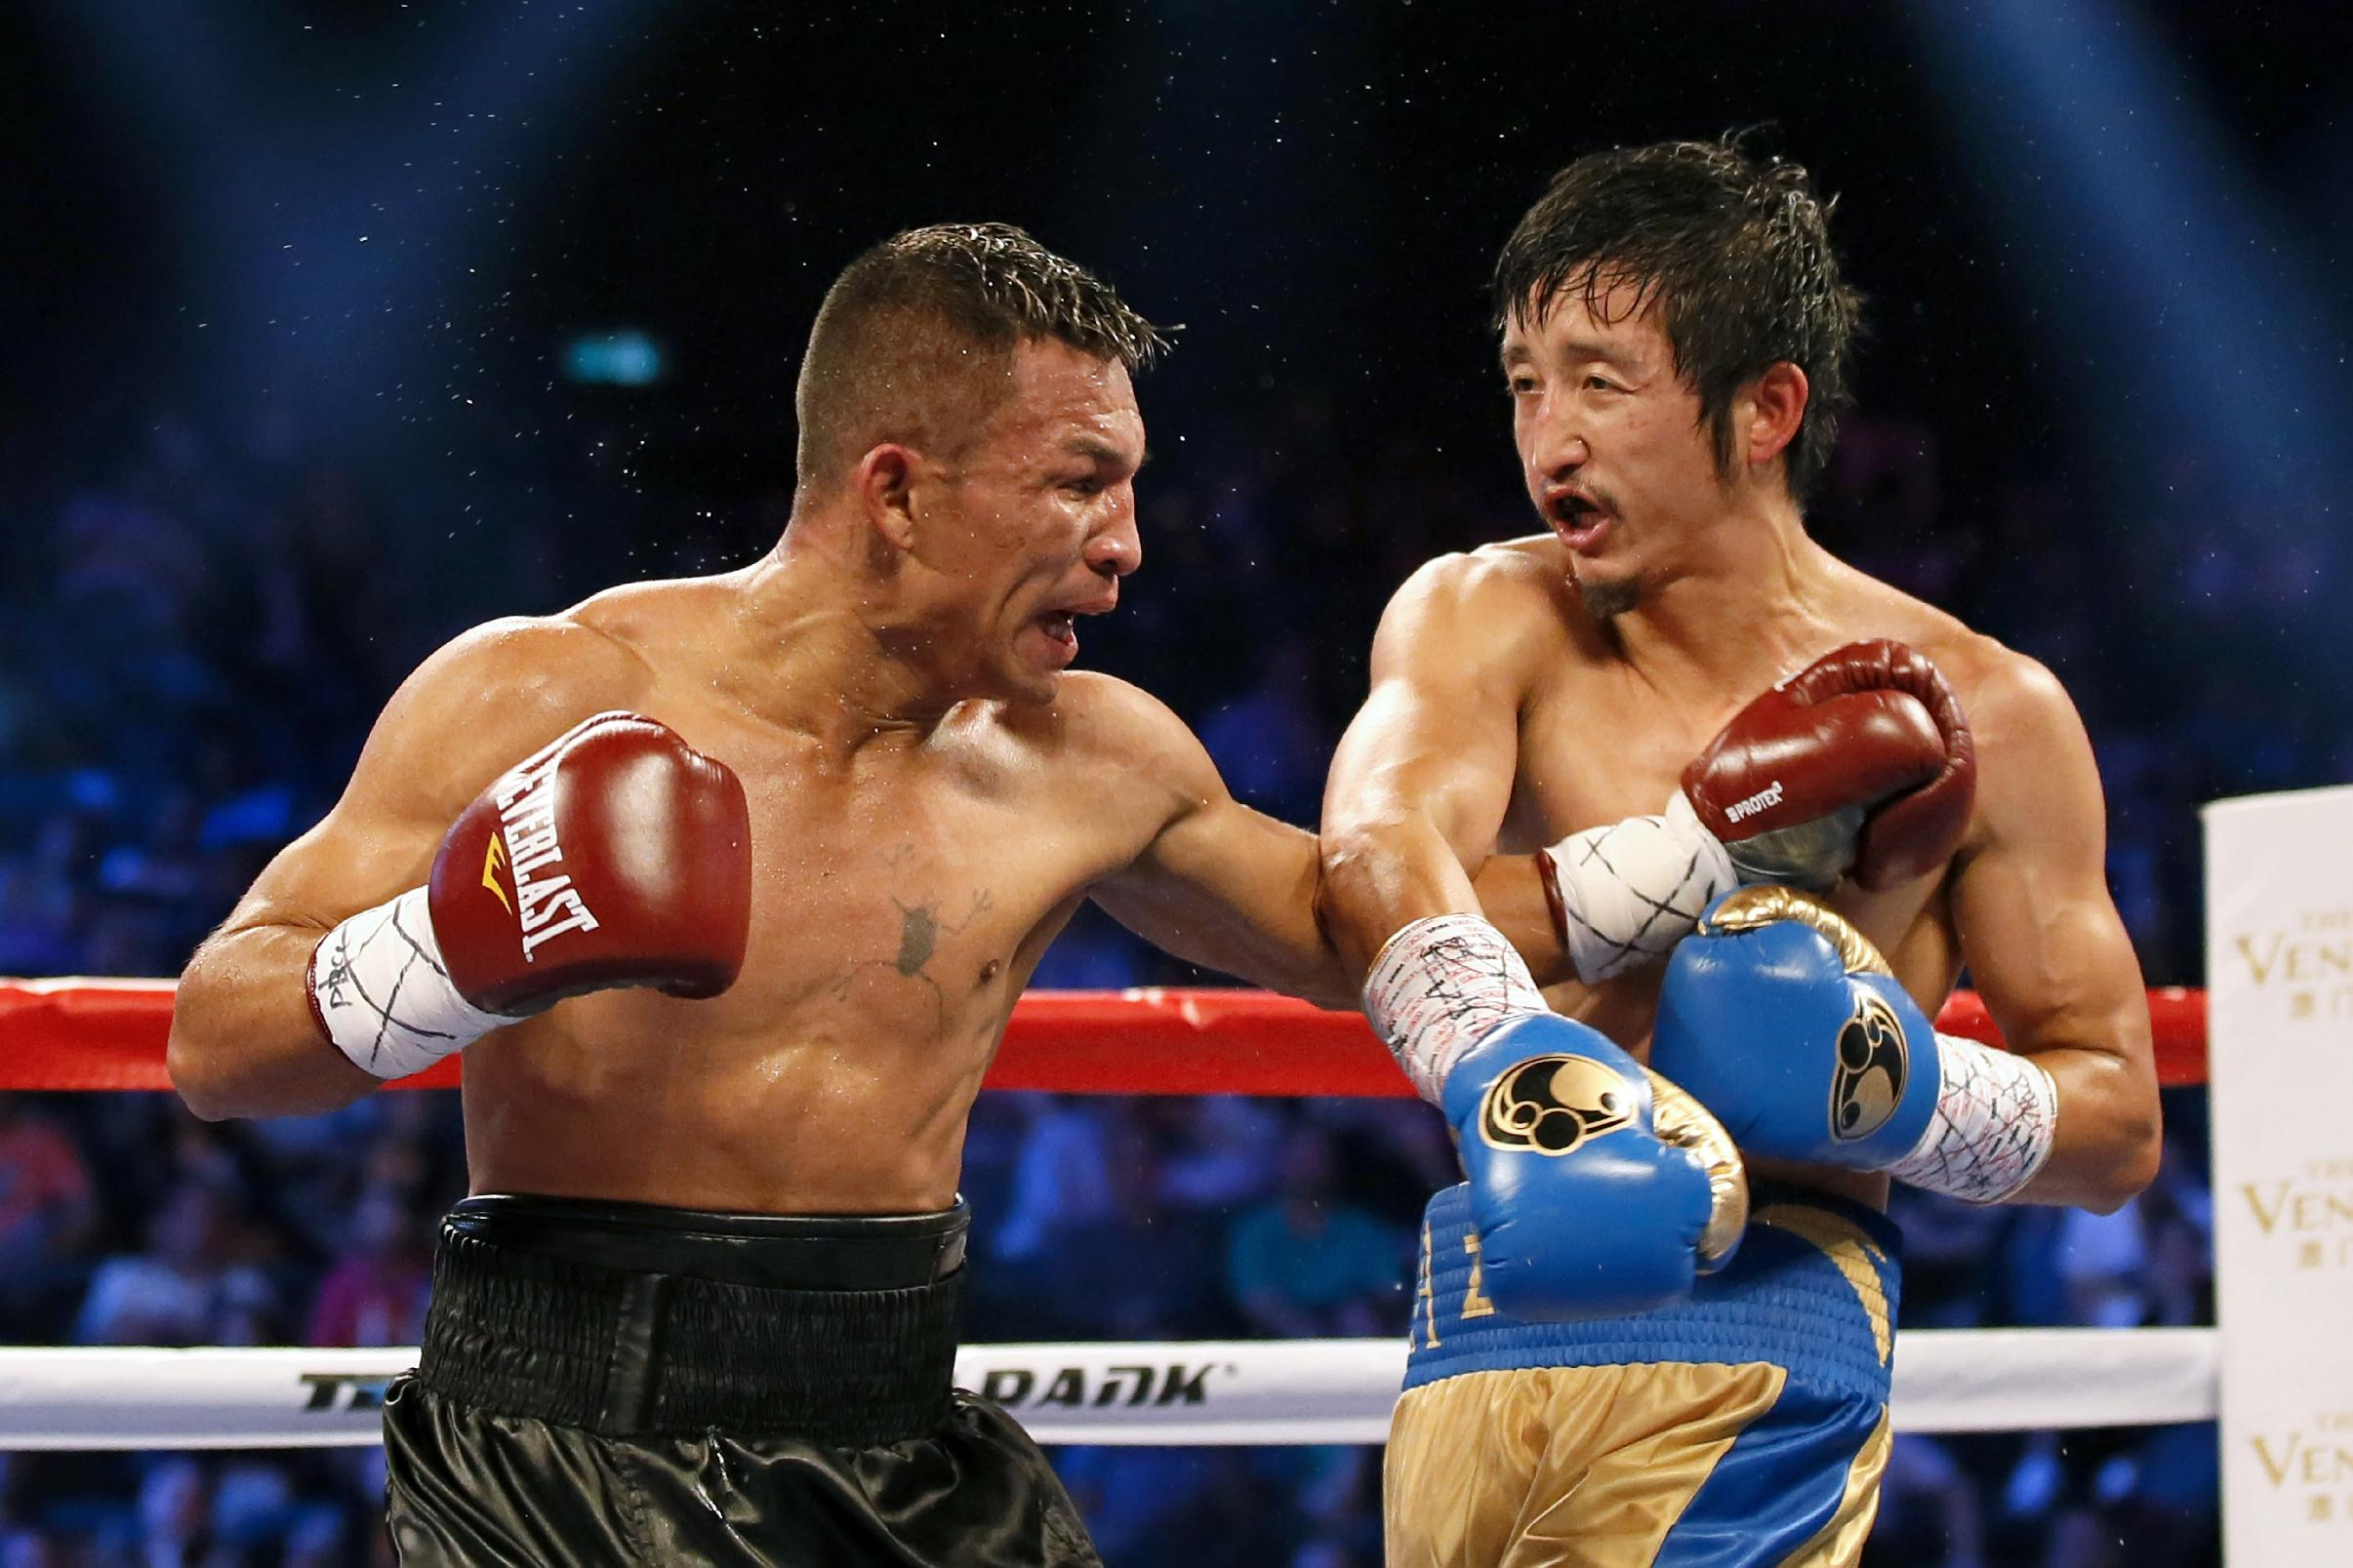 Chinese boxer Zou Shiming, right, fights with Colombian boxer Luis De La Rosa during the WBO international flyweight title match in Macau, China, Saturday July 19, 2014. Zou Shiming won the competition